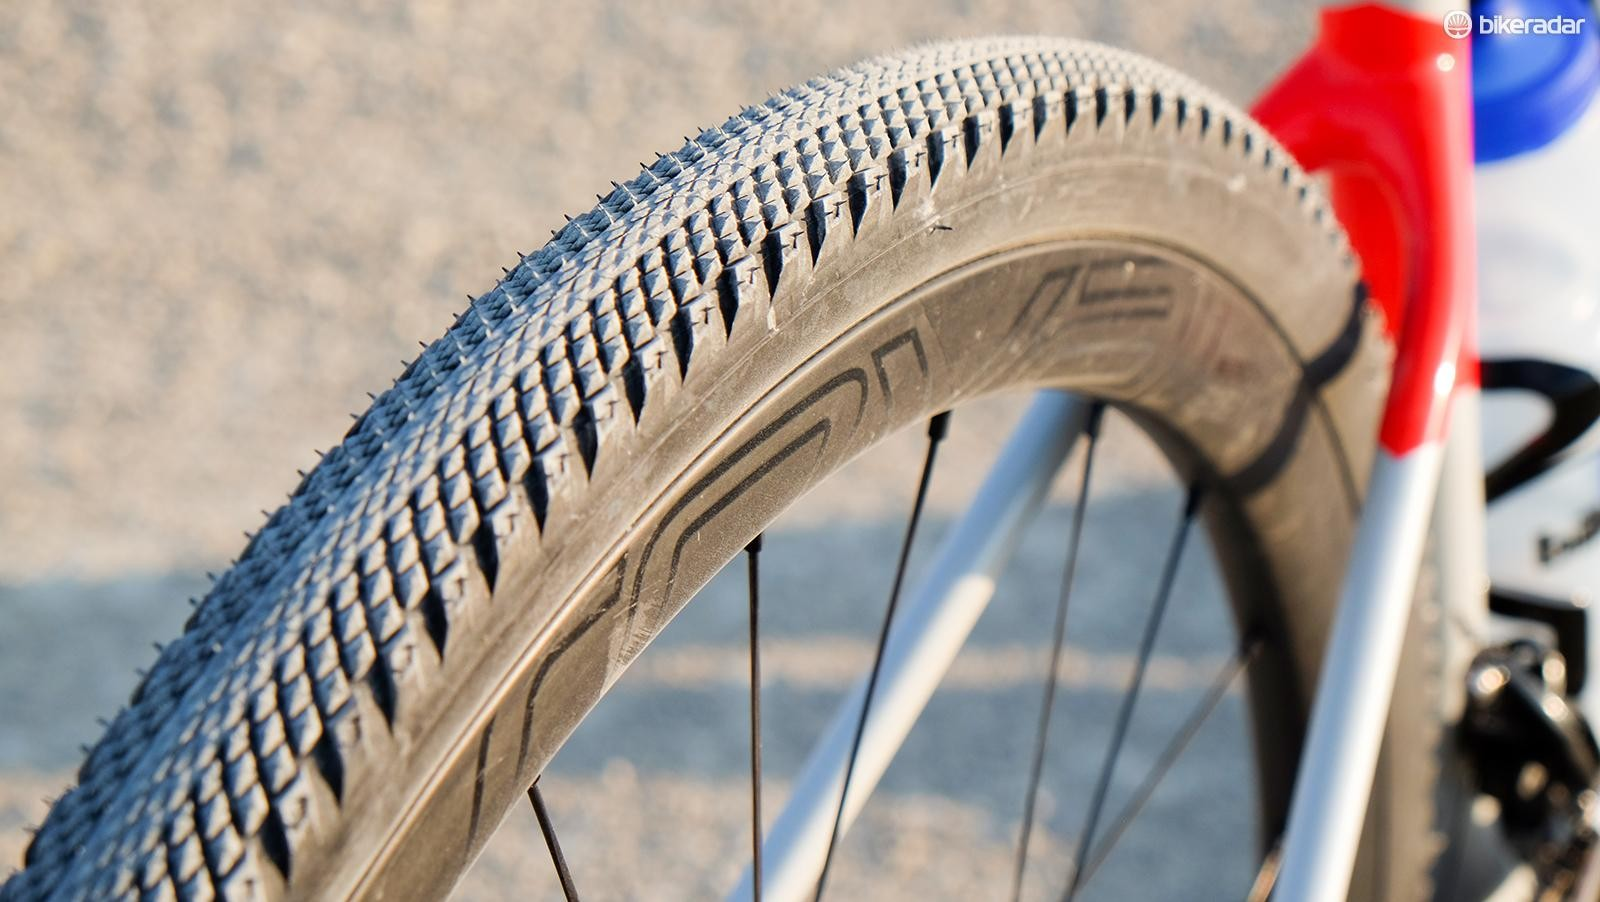 Specialized's 700x38mm Trigger Pro tires are fast and sturdy